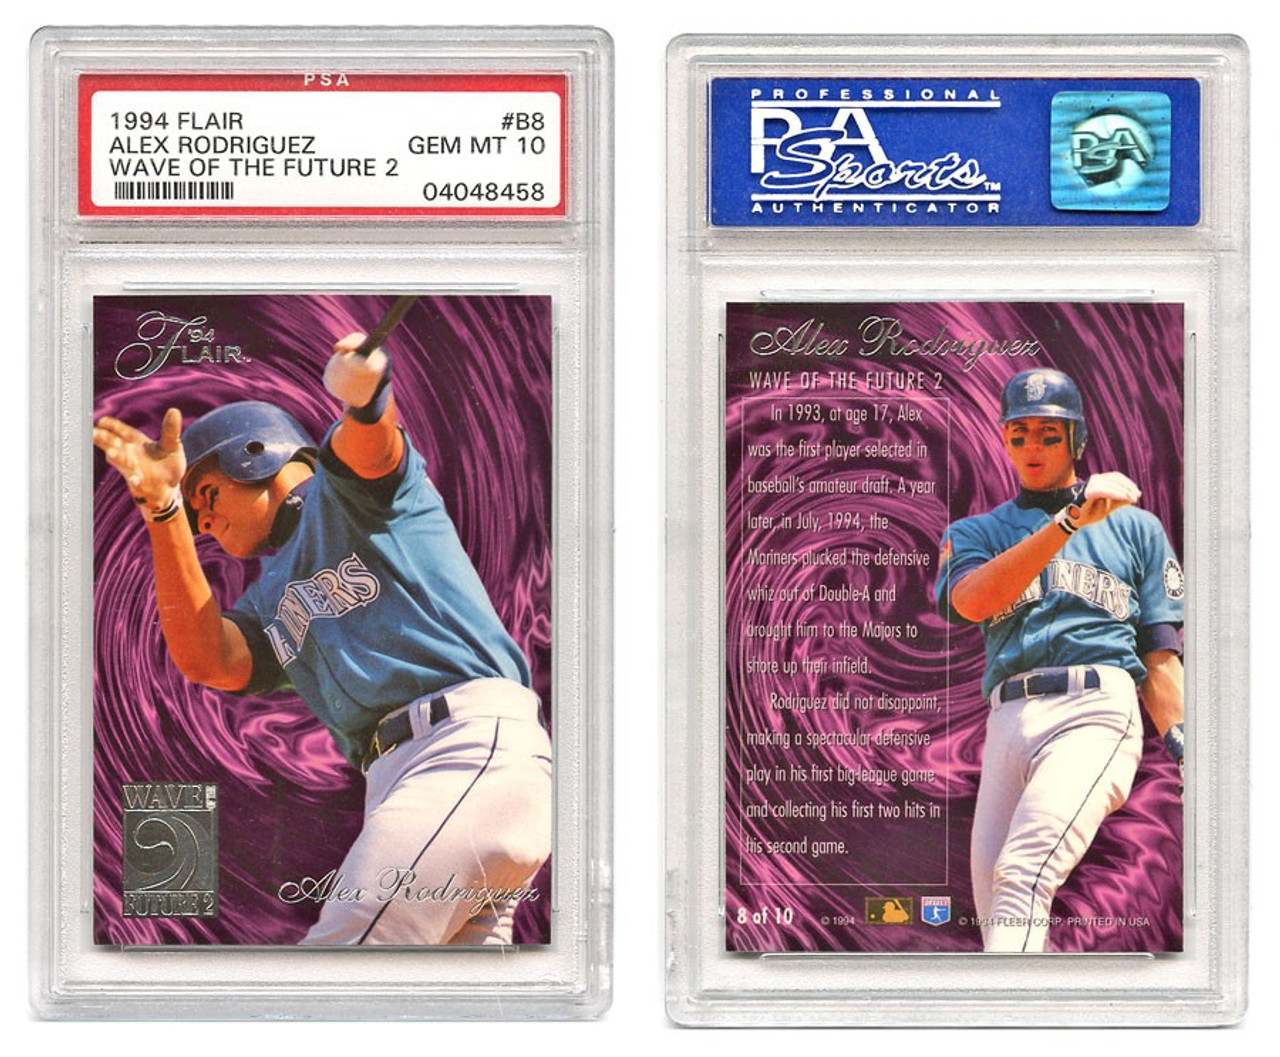 Mlb 1994 Flair Alex Rodriguez Trading Card Wave Of The Future 2 Gem Mint 10